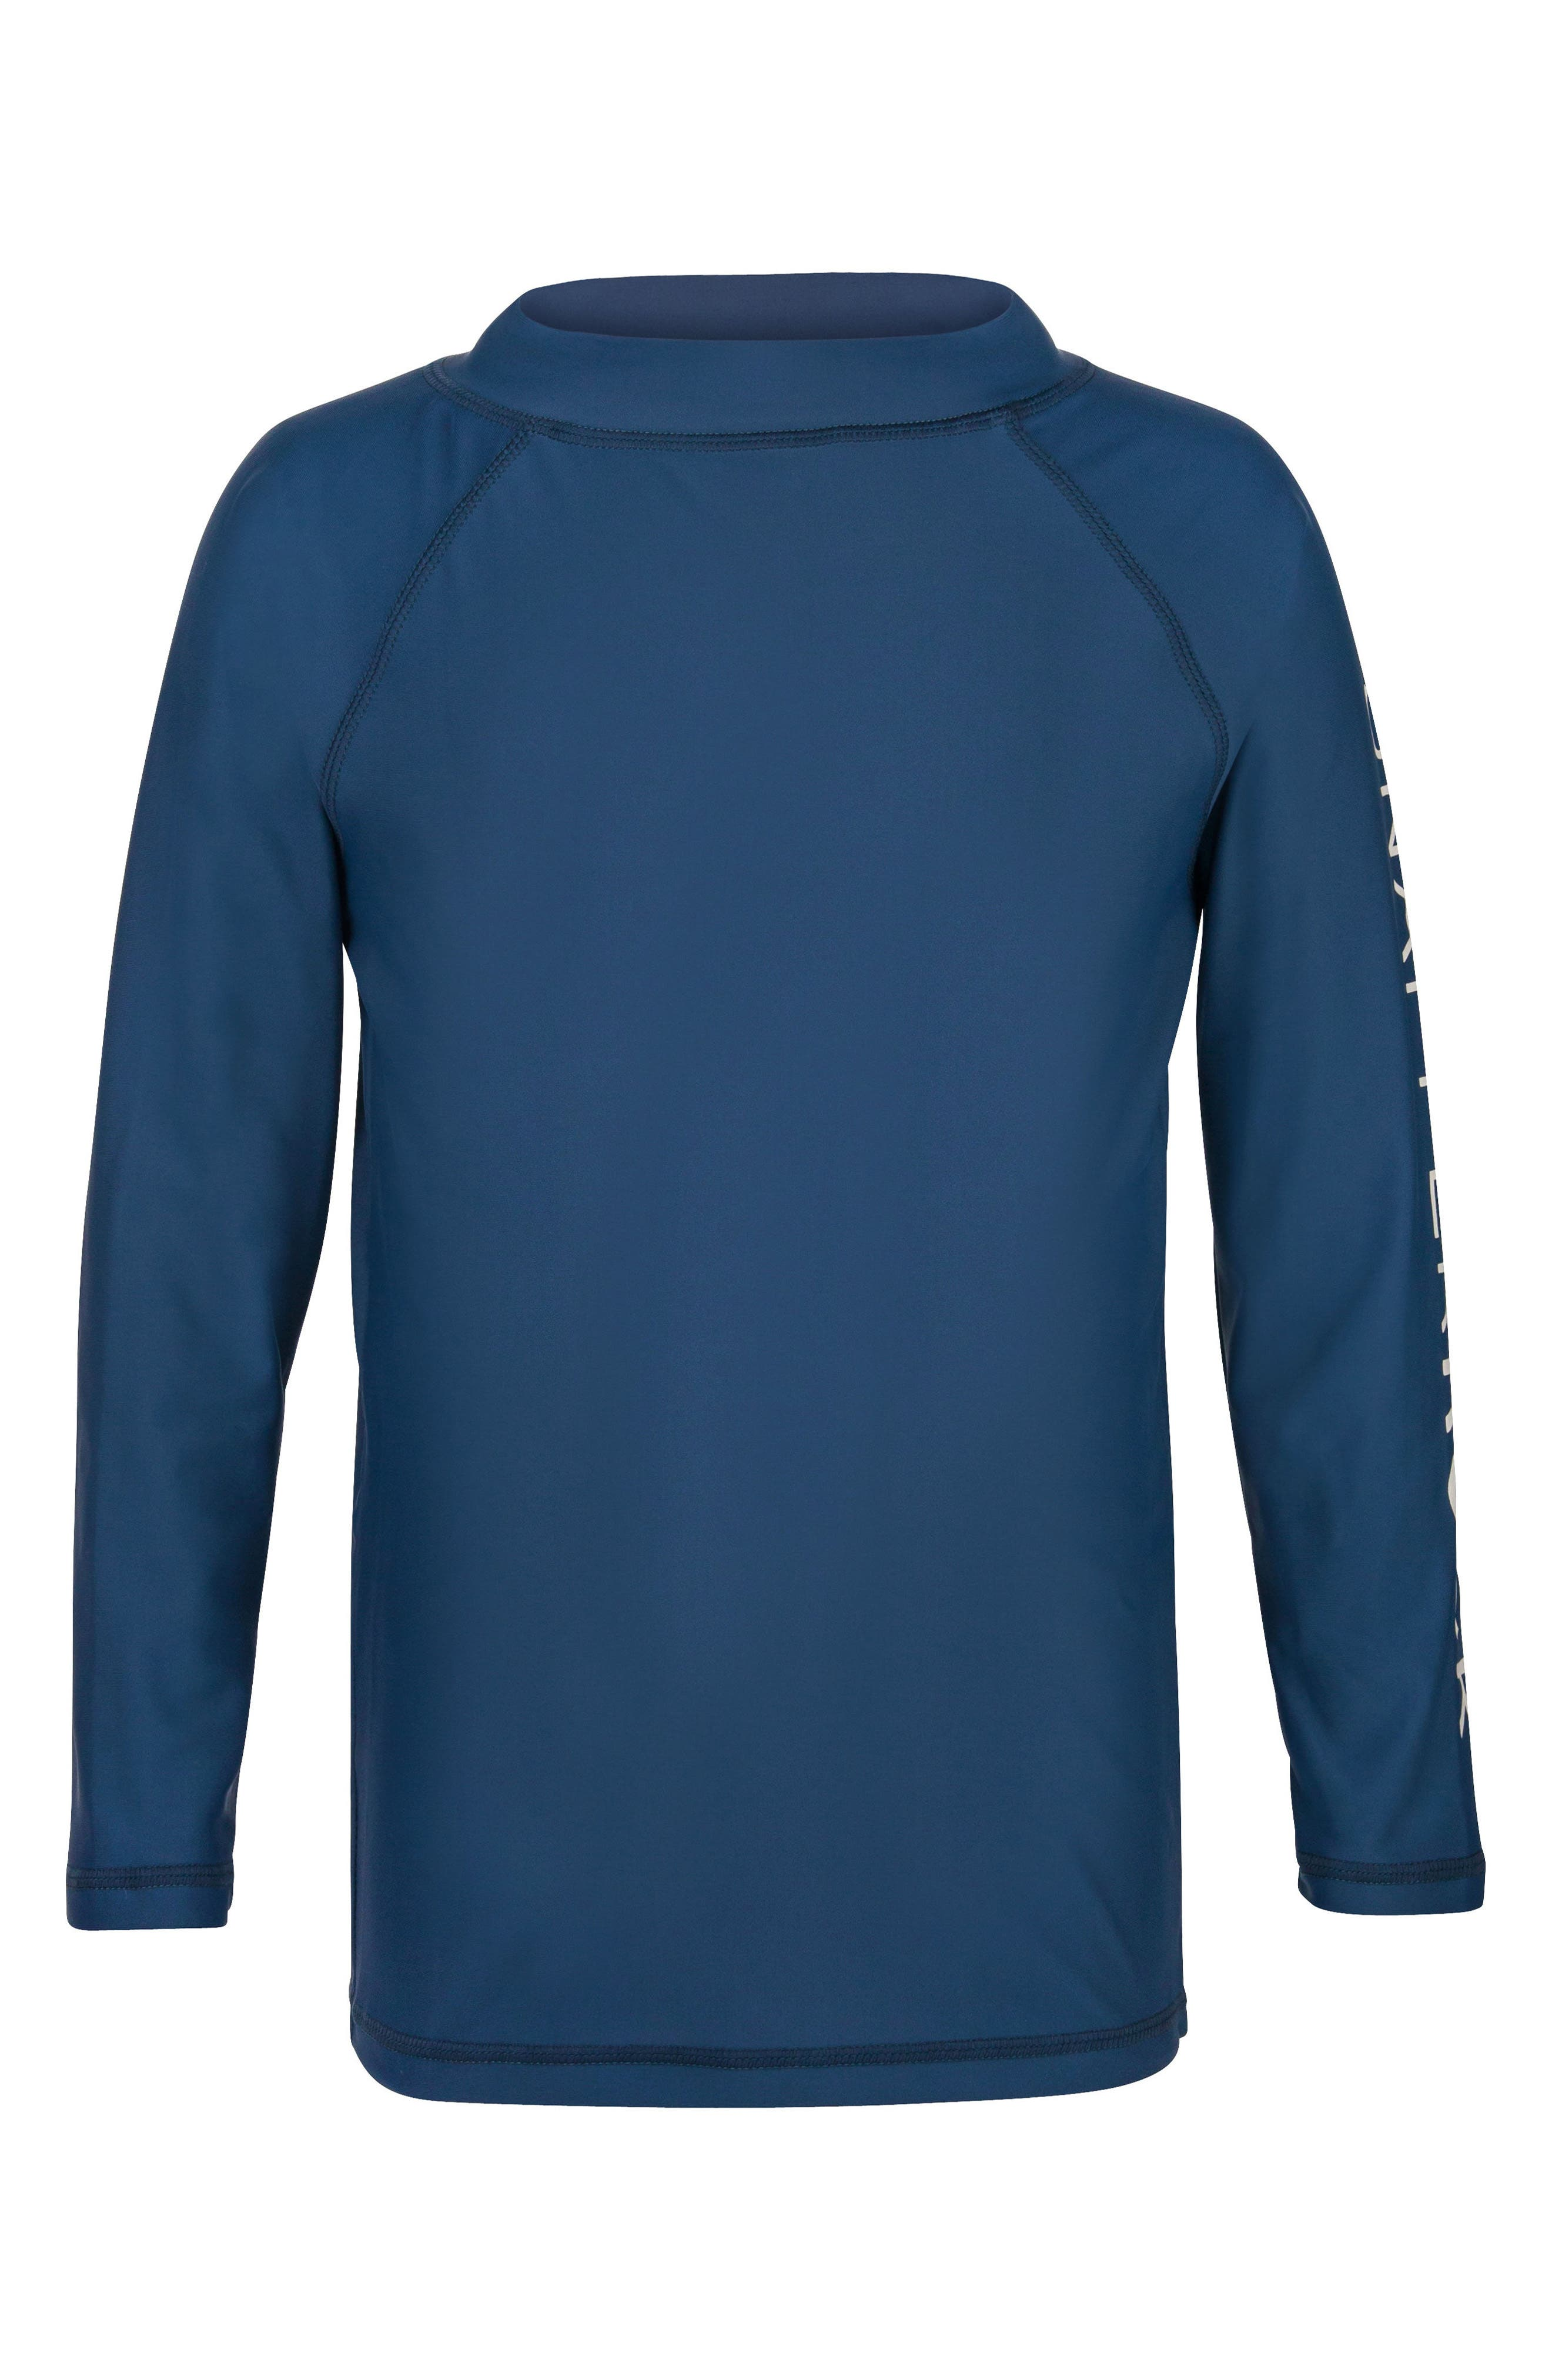 Raglan Long Sleeve Rashguard,                             Main thumbnail 1, color,                             Denim